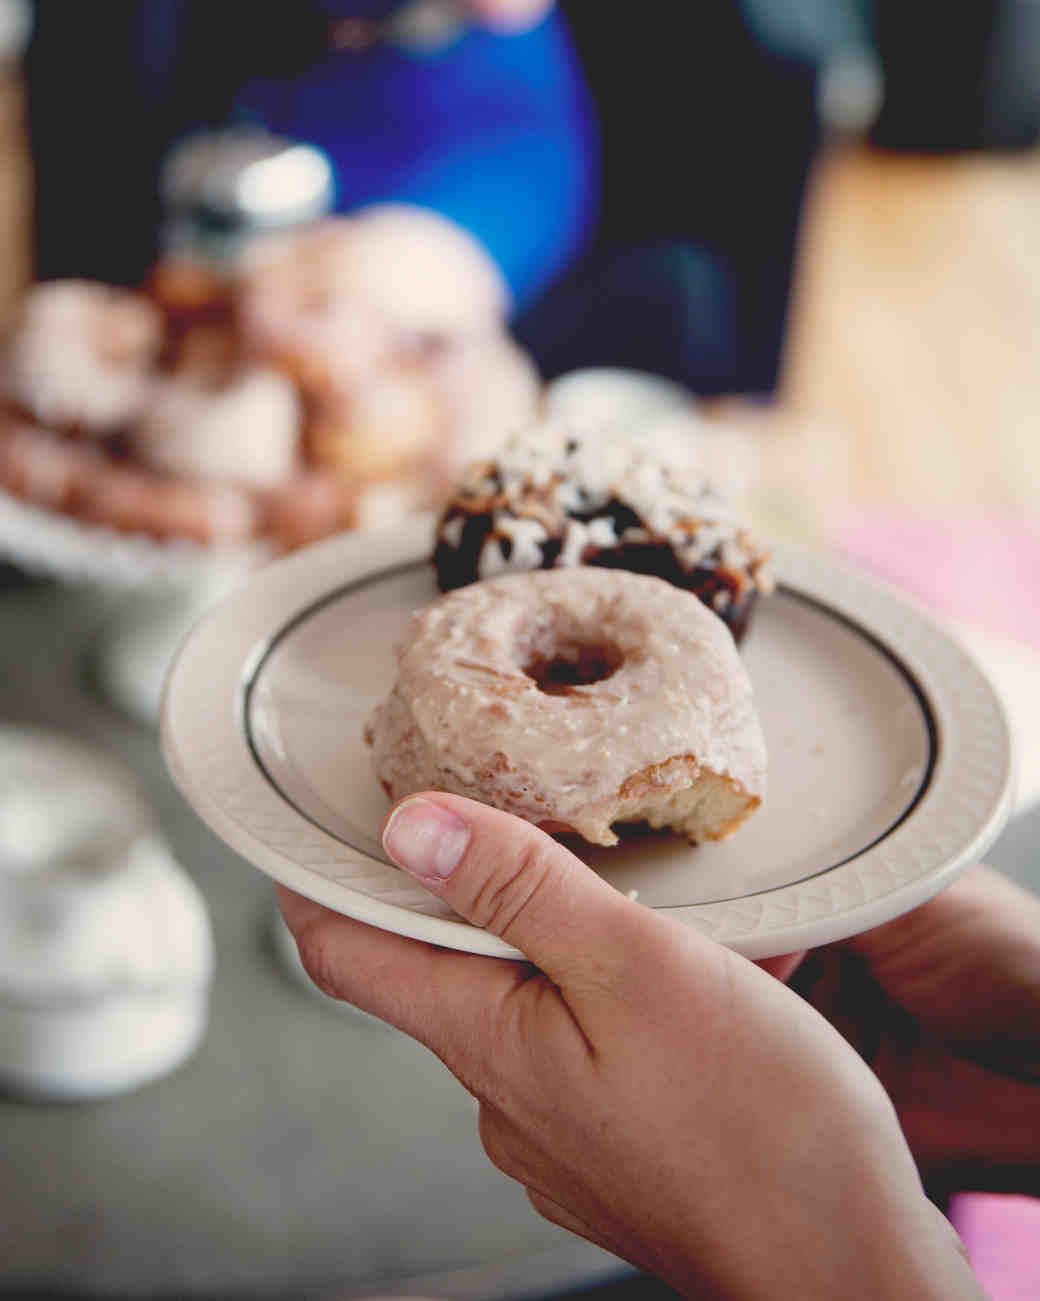 claire-thomas-bridal-shower-tea-two-donuts-on-plate-0814.jpg